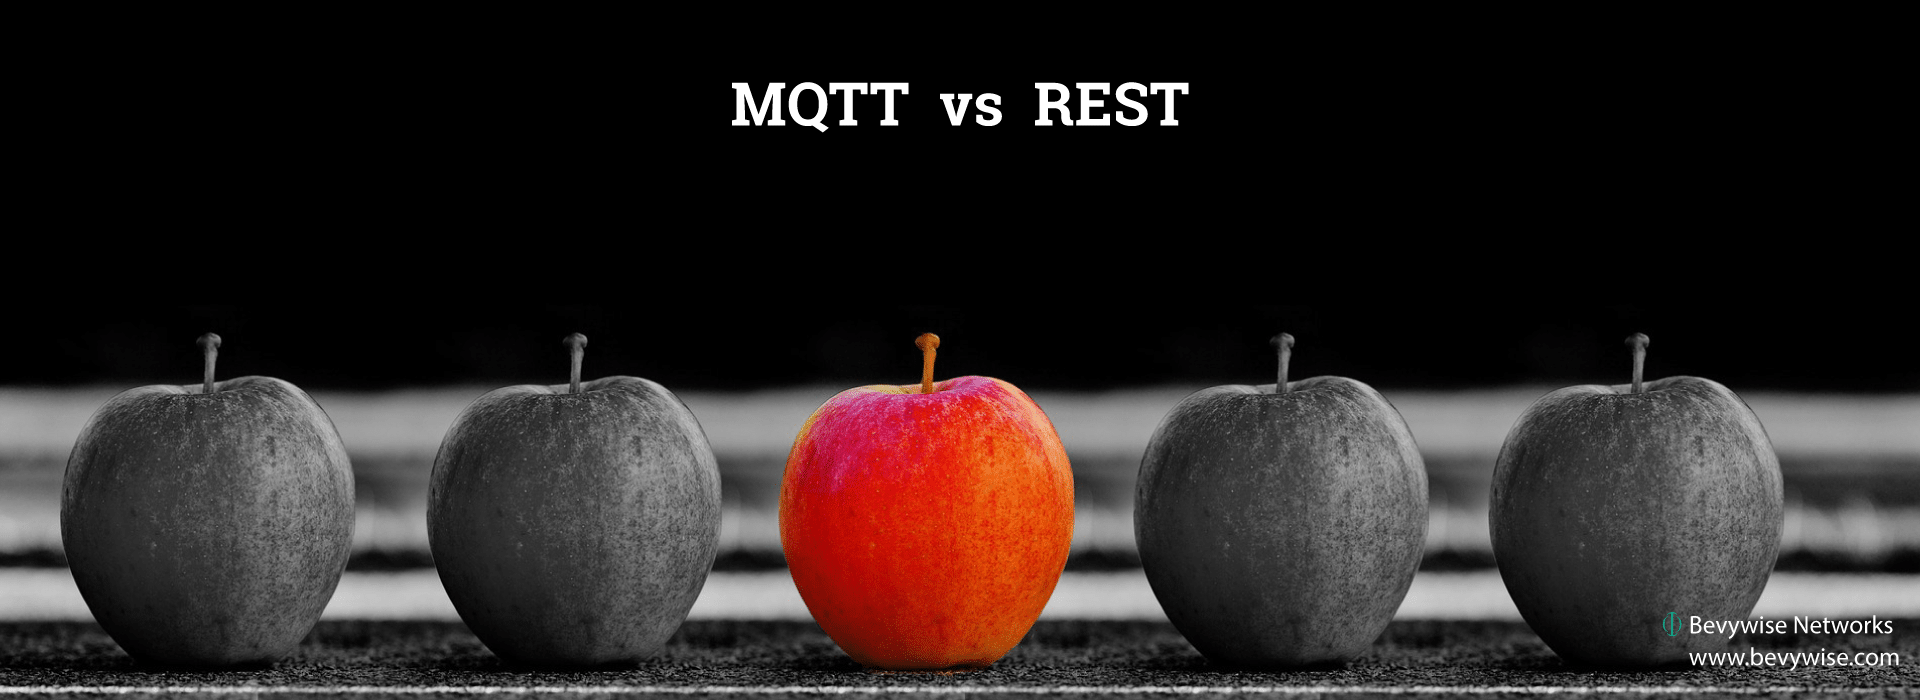 MQTT vs REST - better protocol for IoT Implementation - Bevywise